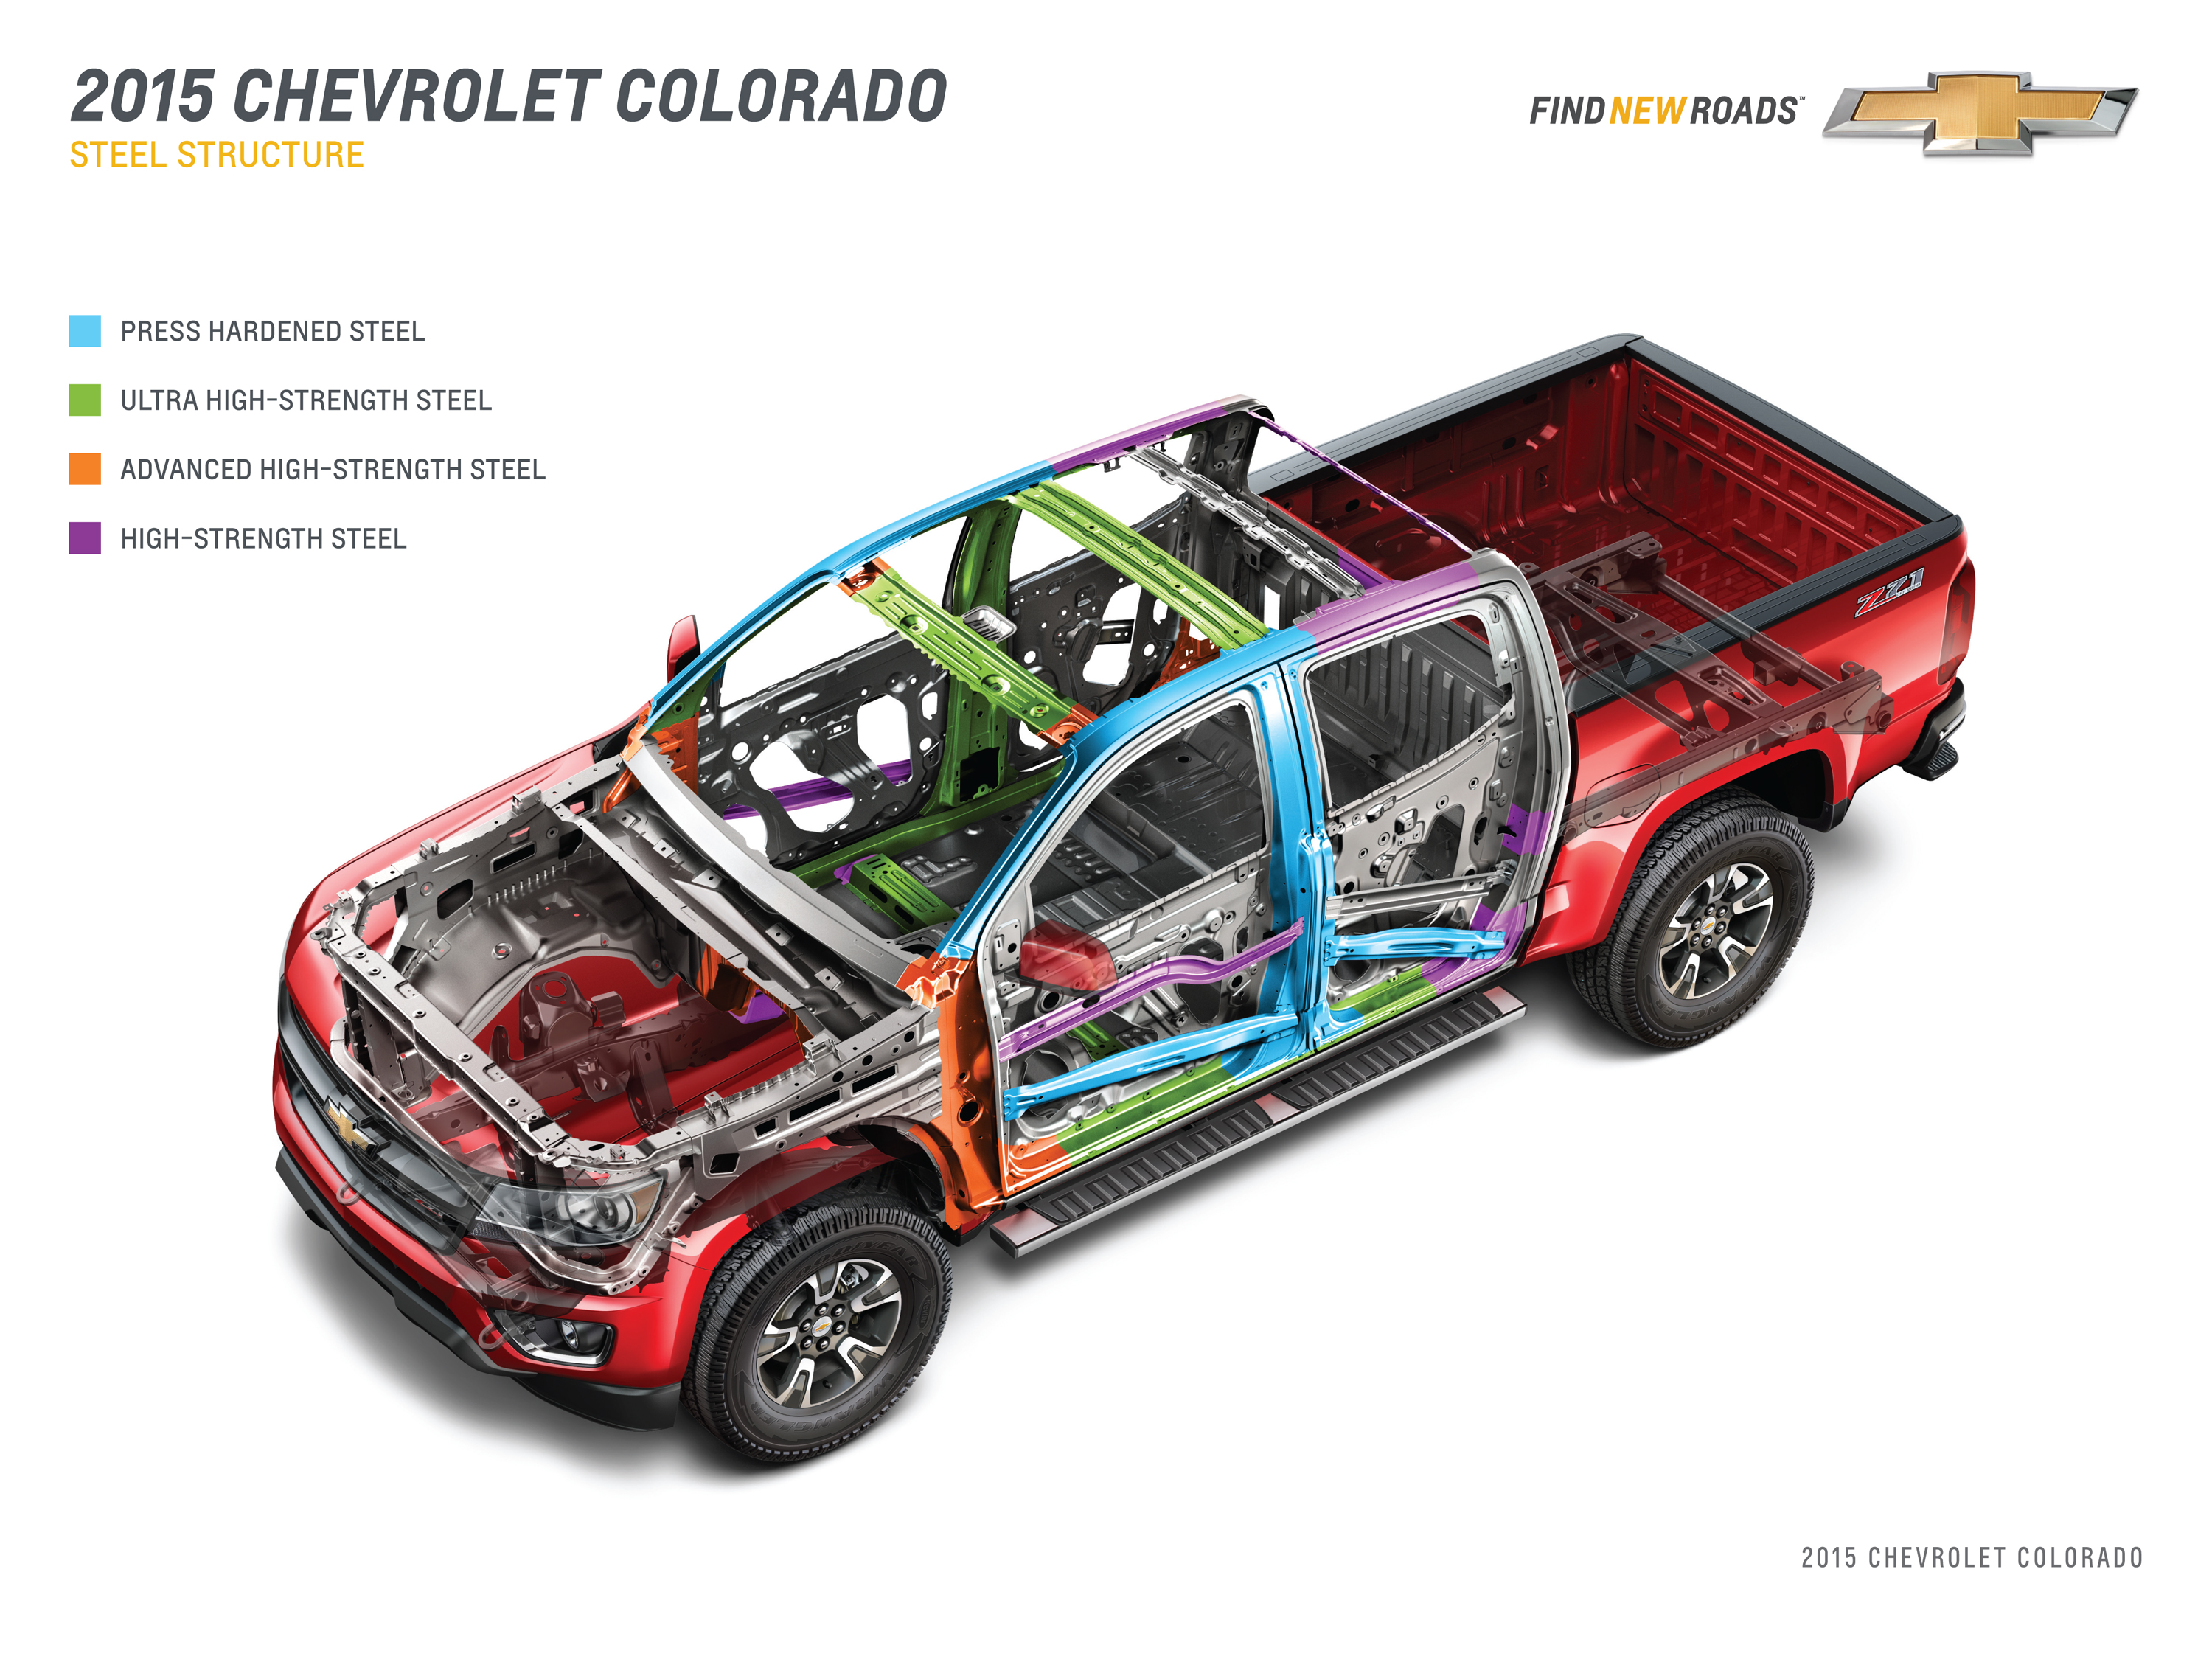 Engineering, Advanced Materials Help Slim Down Colorado